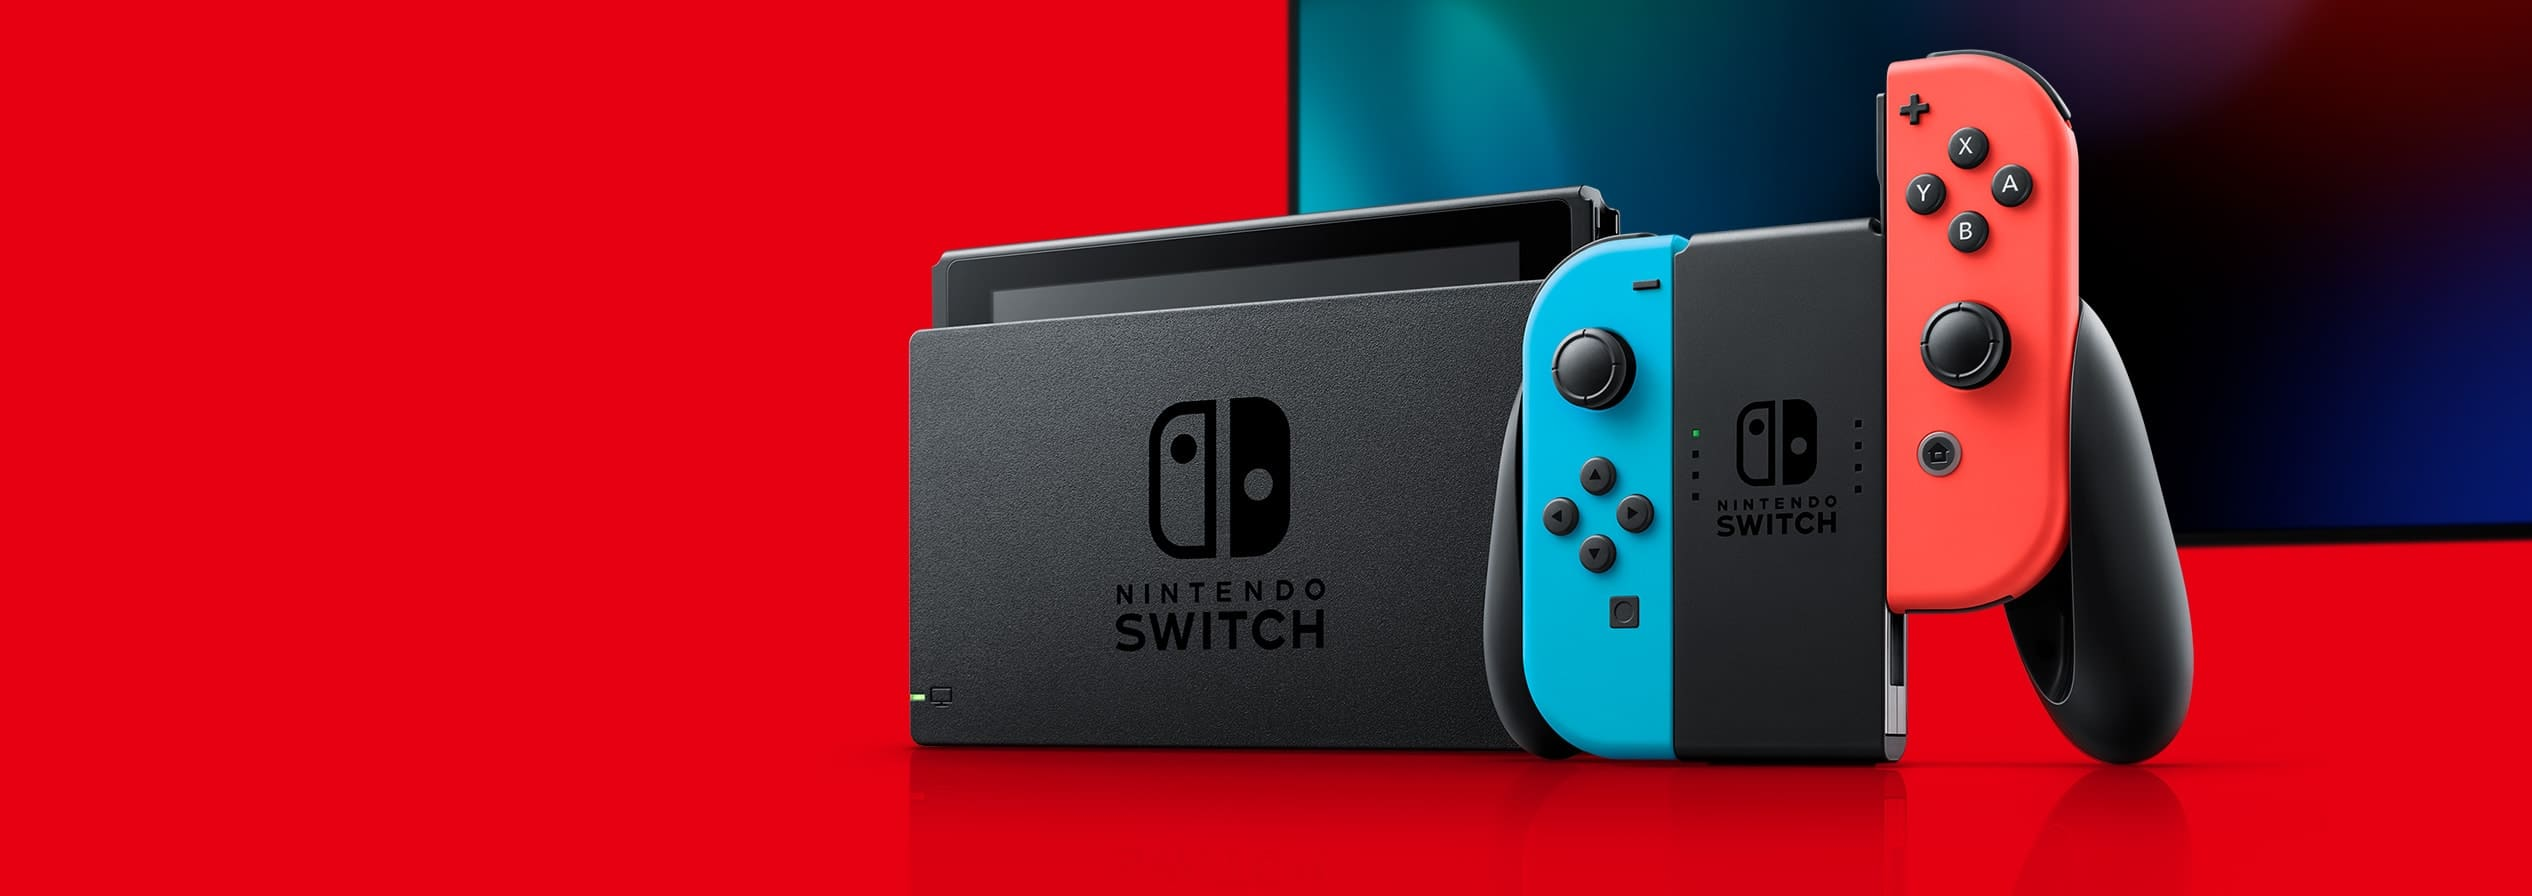 Expand memory: Important information and recommendations for Nintendo Switch